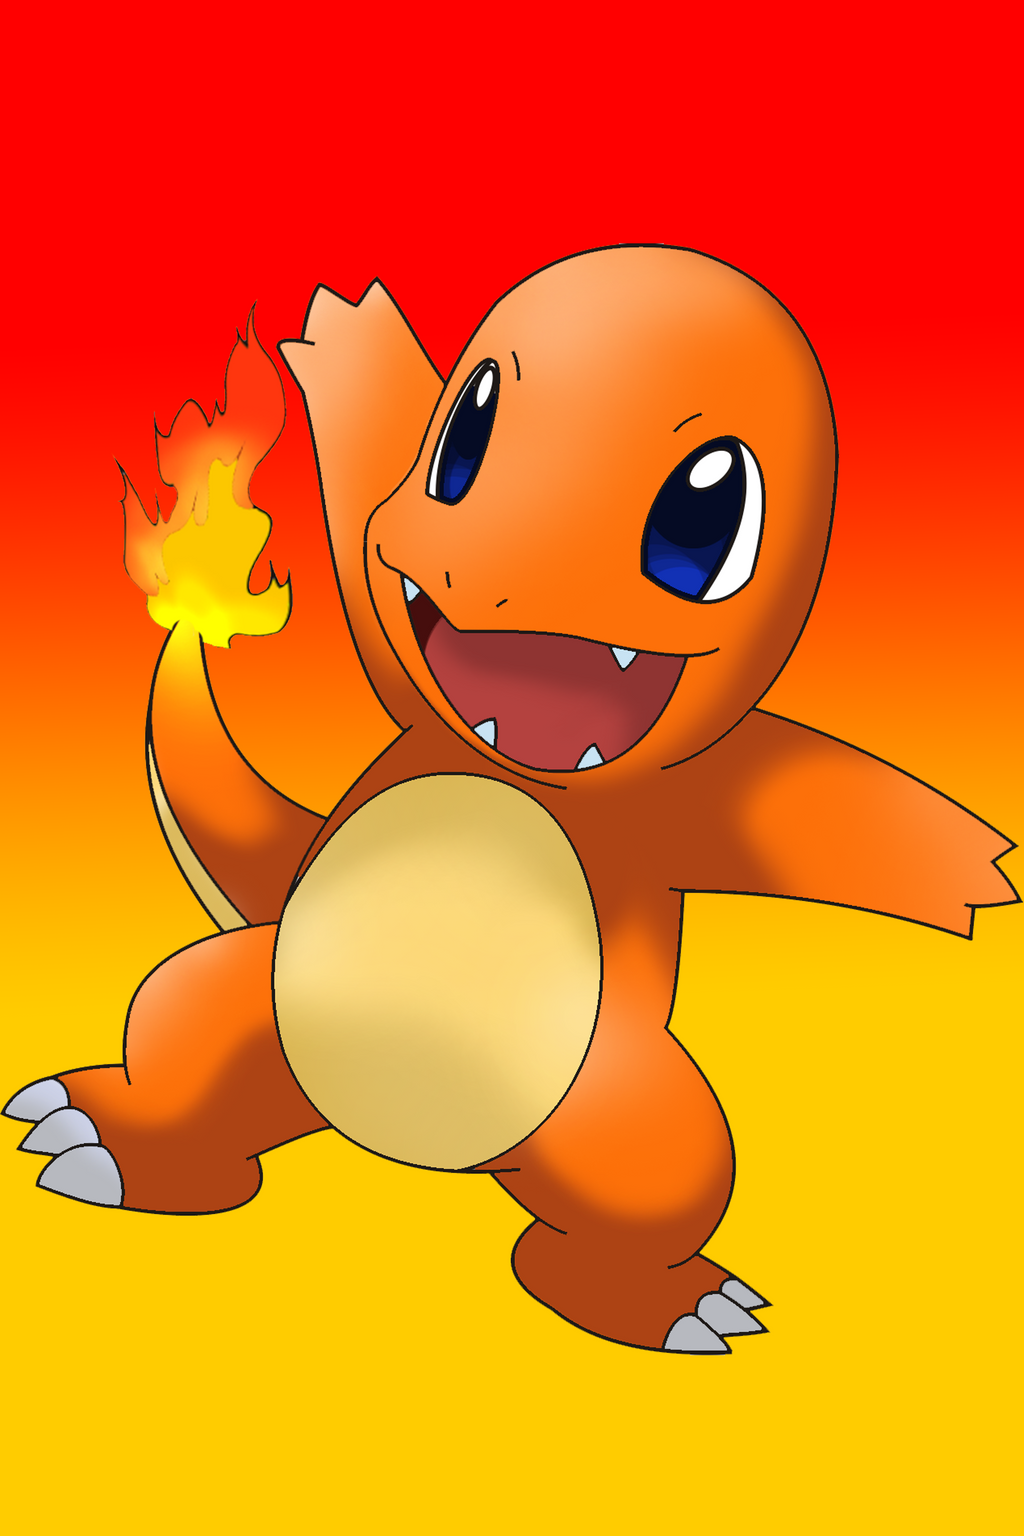 charmander iphone wallpaper by xevewi on deviantart